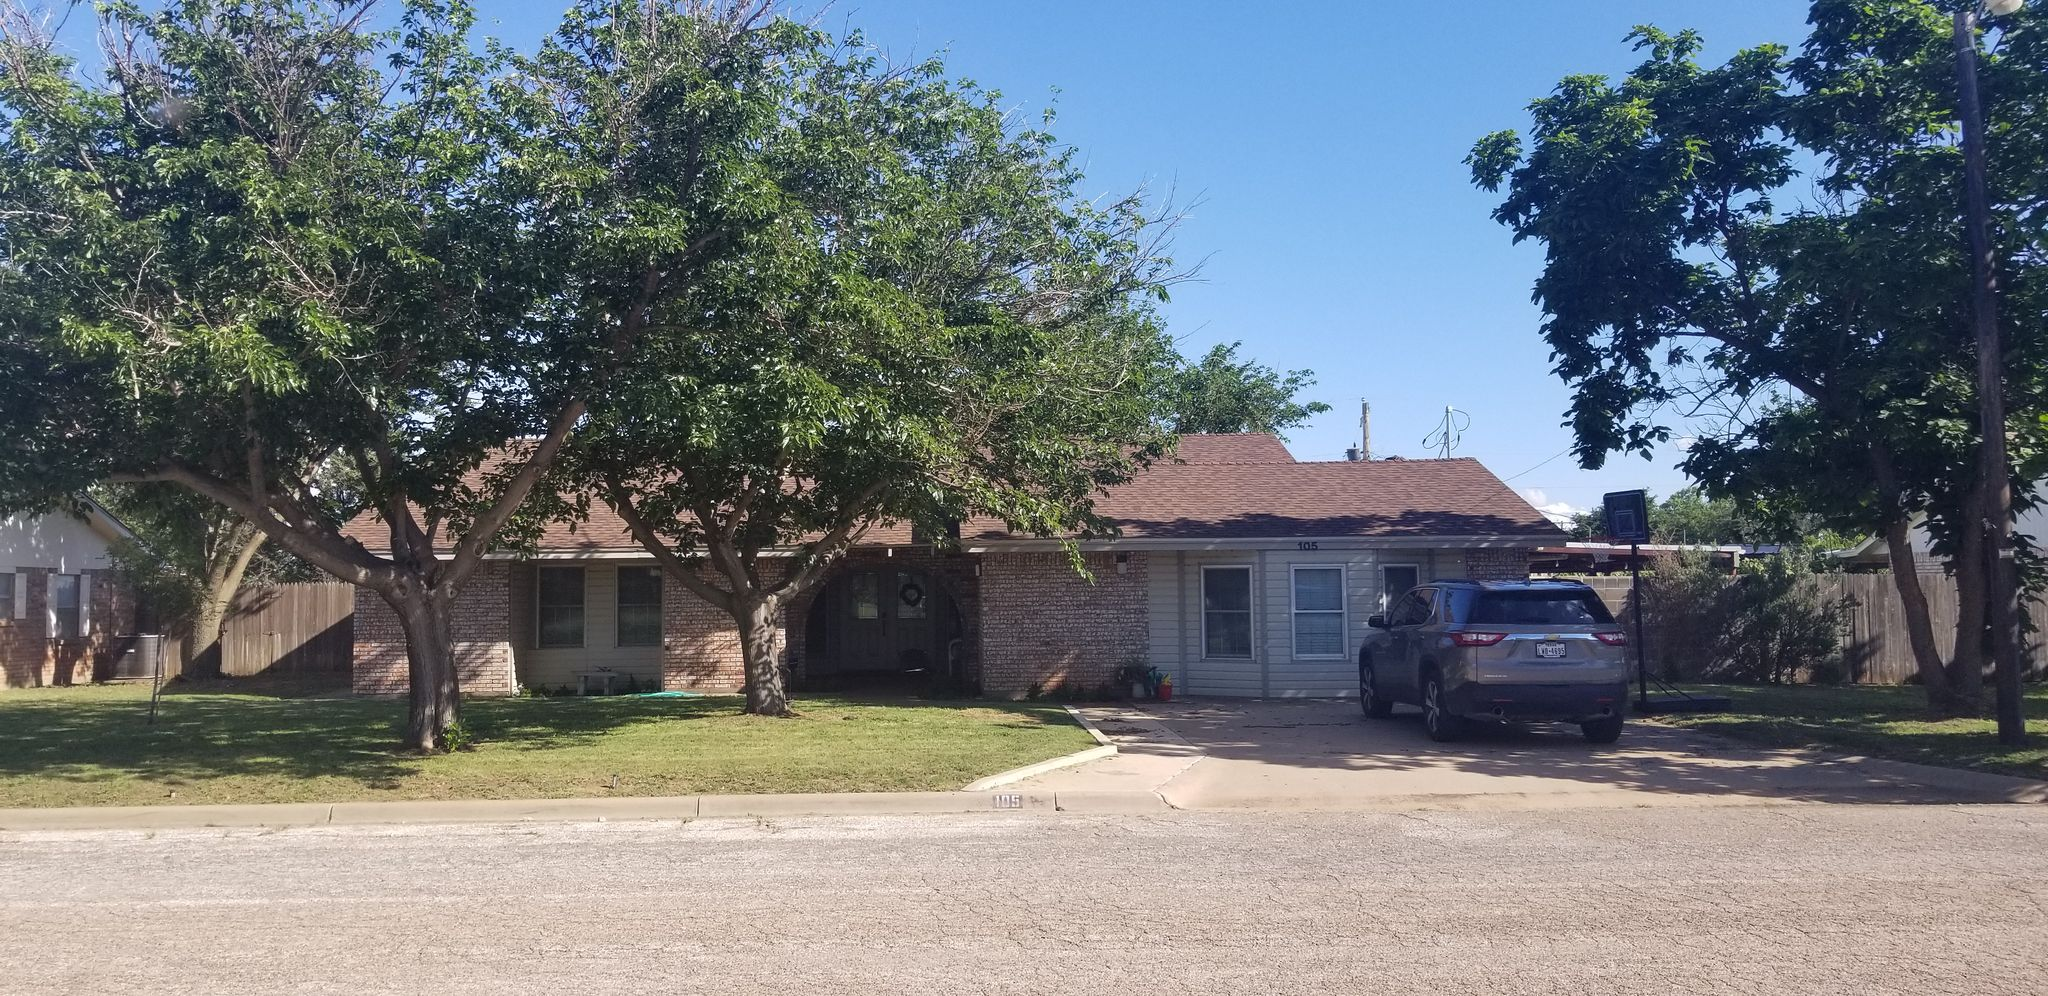 For Sale By Owner Colorado >> 105 E 21st St Colorado City Tx 79512 4 Bed 3 Bath Single Family